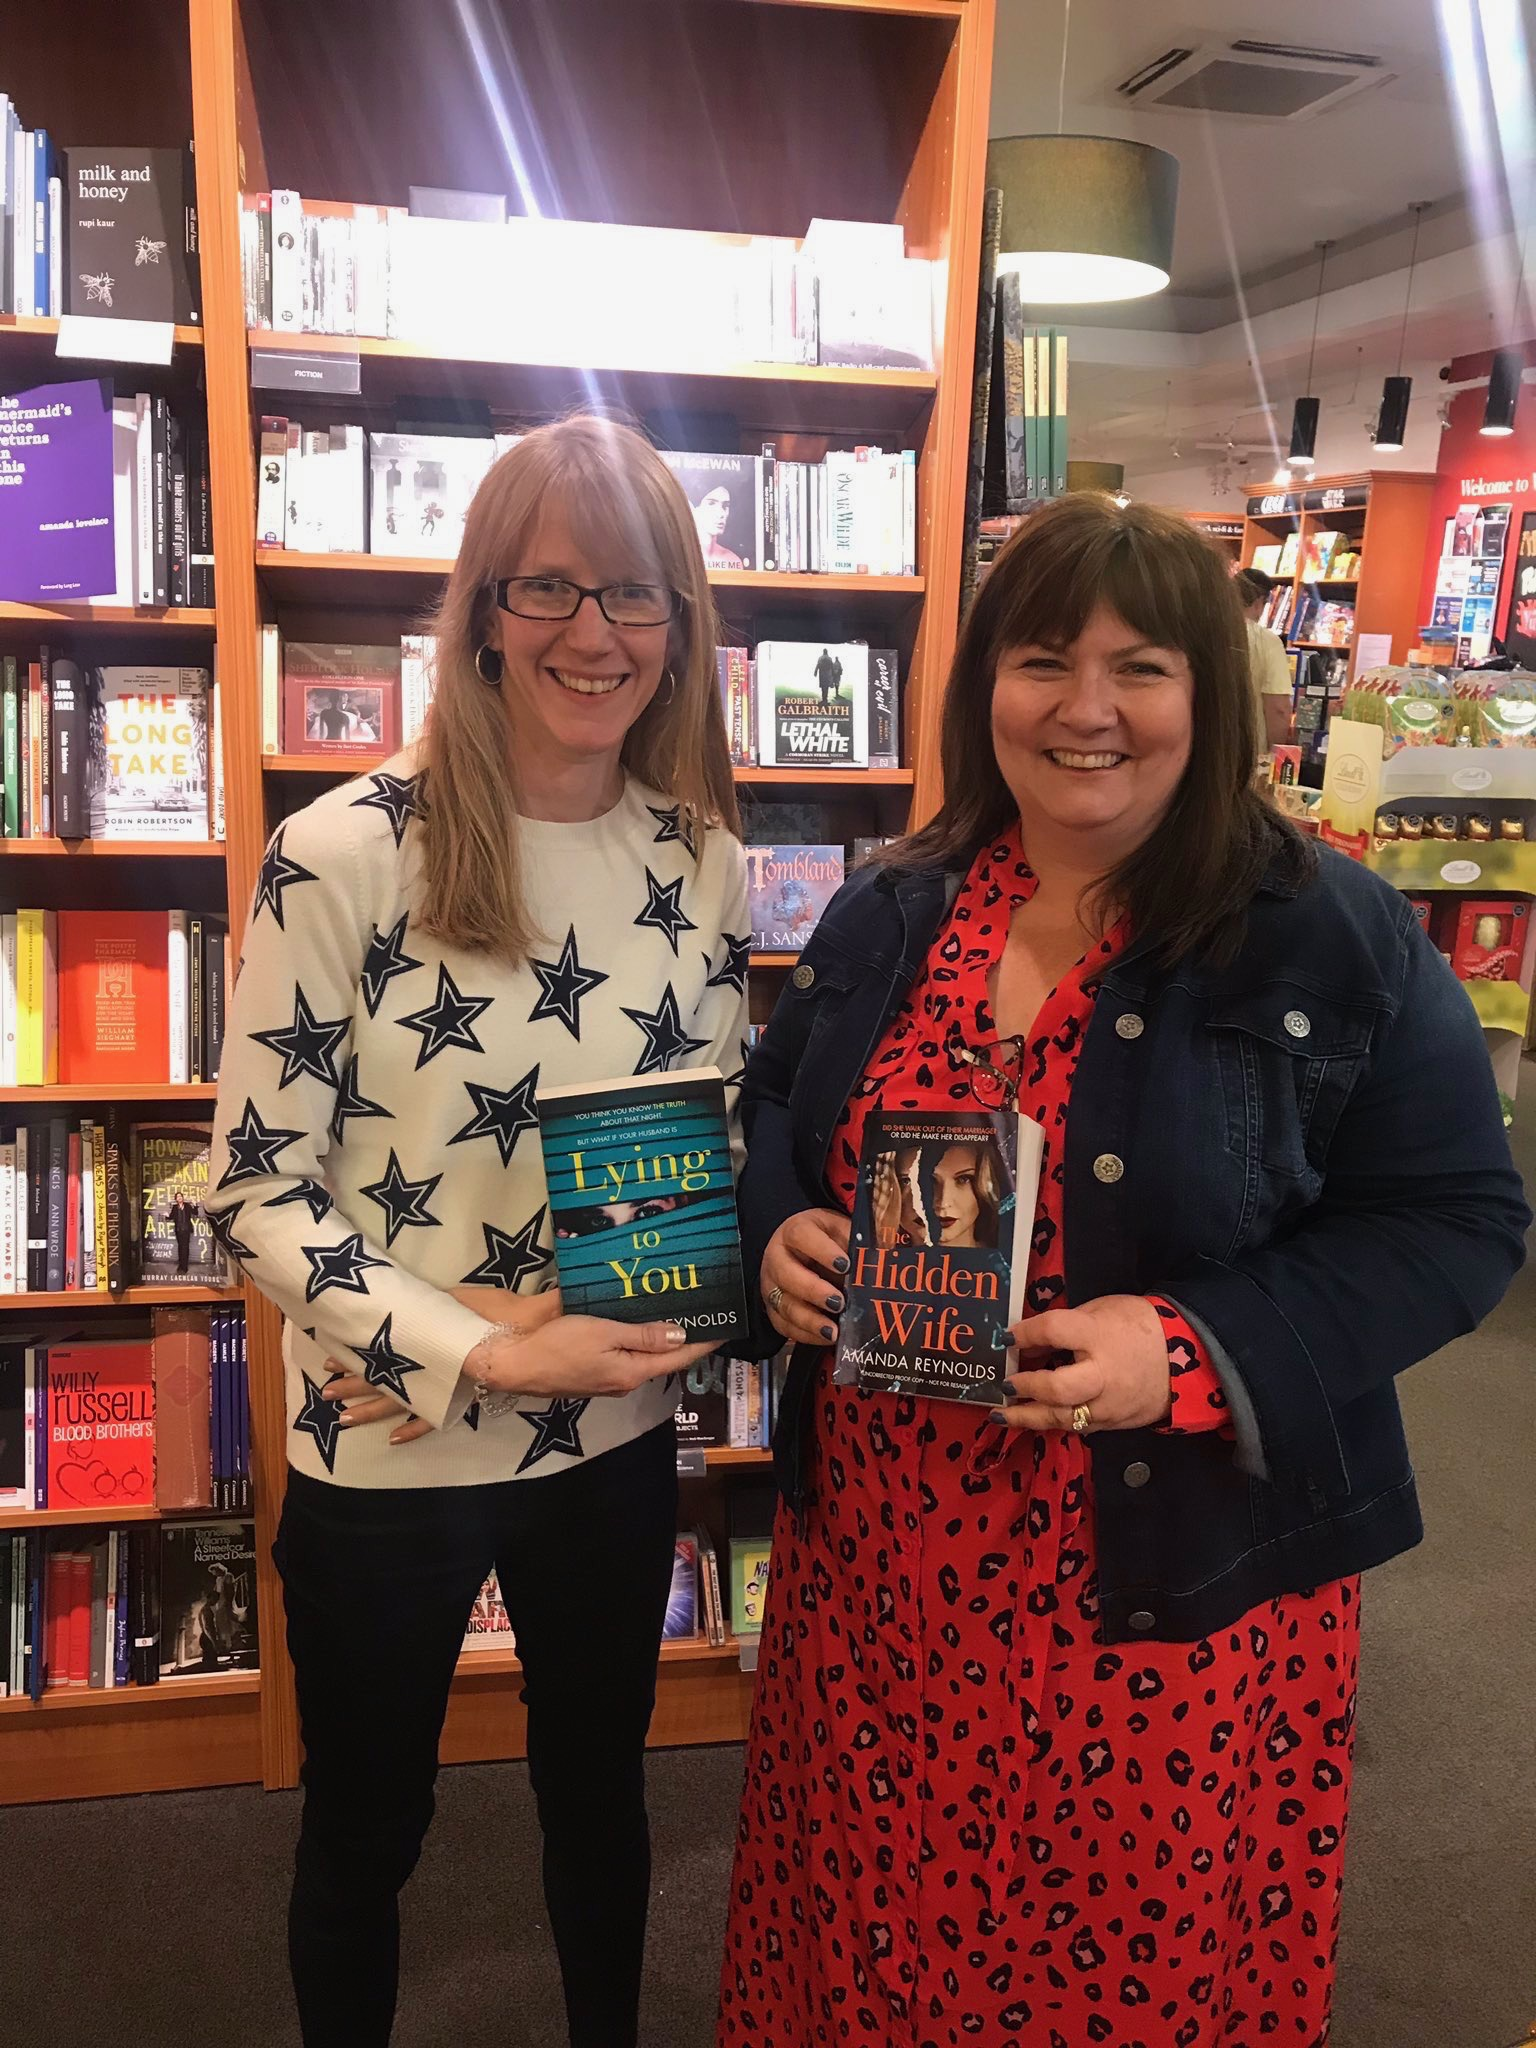 Me with Danielle at Waterstones Gloucester when I dropped in a proof copy of my latest book - THE HIDDEN WIFE